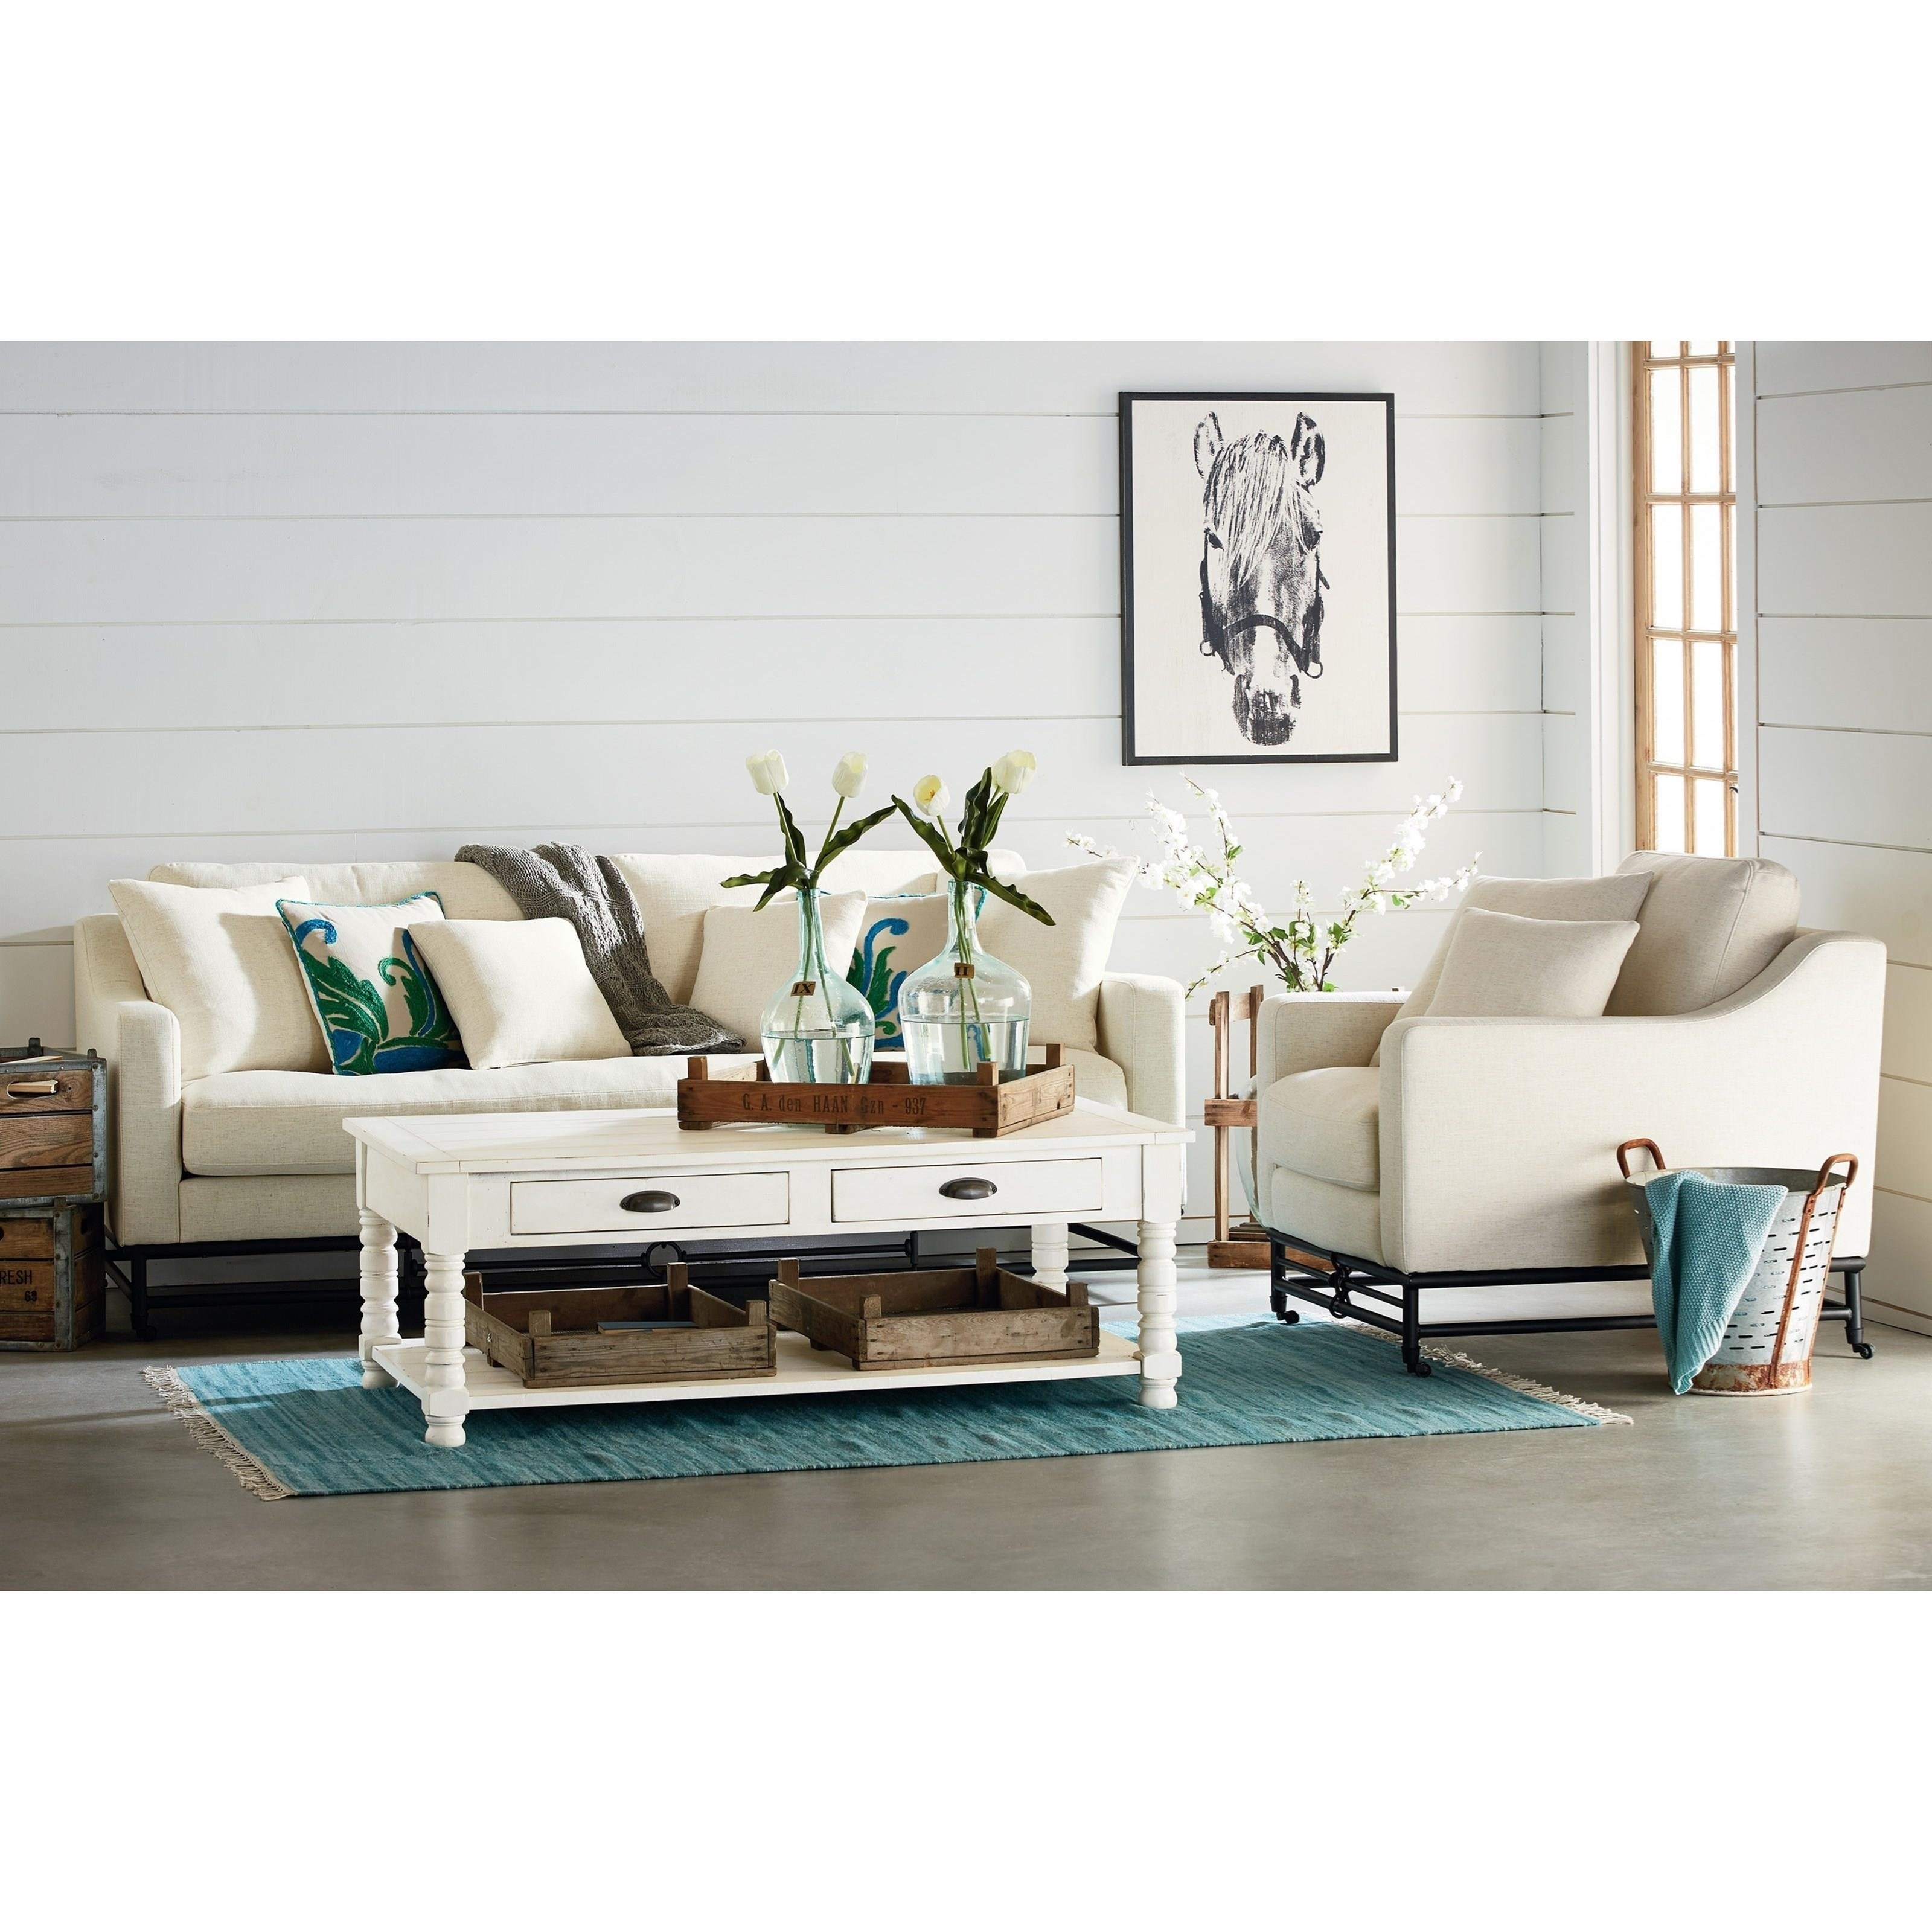 Sofamagnolia Homejoanna Gaines | Wolf And Gardiner Wolf For Magnolia Home Homestead 4 Piece Sectionals By Joanna Gaines (View 22 of 30)